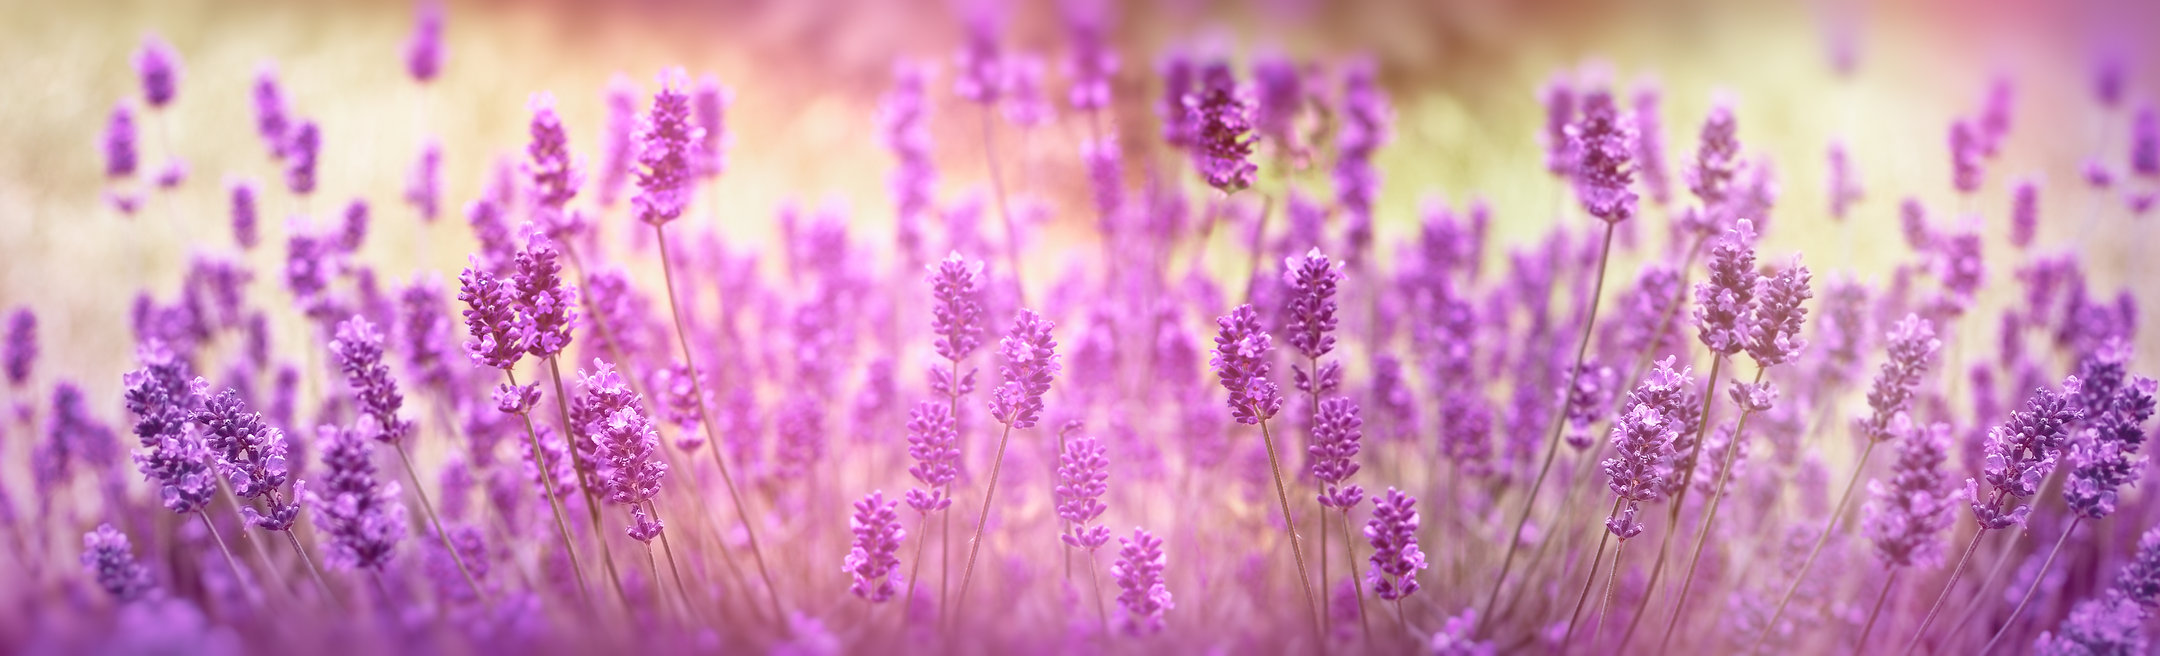 Selective focus on lavender flower, lave